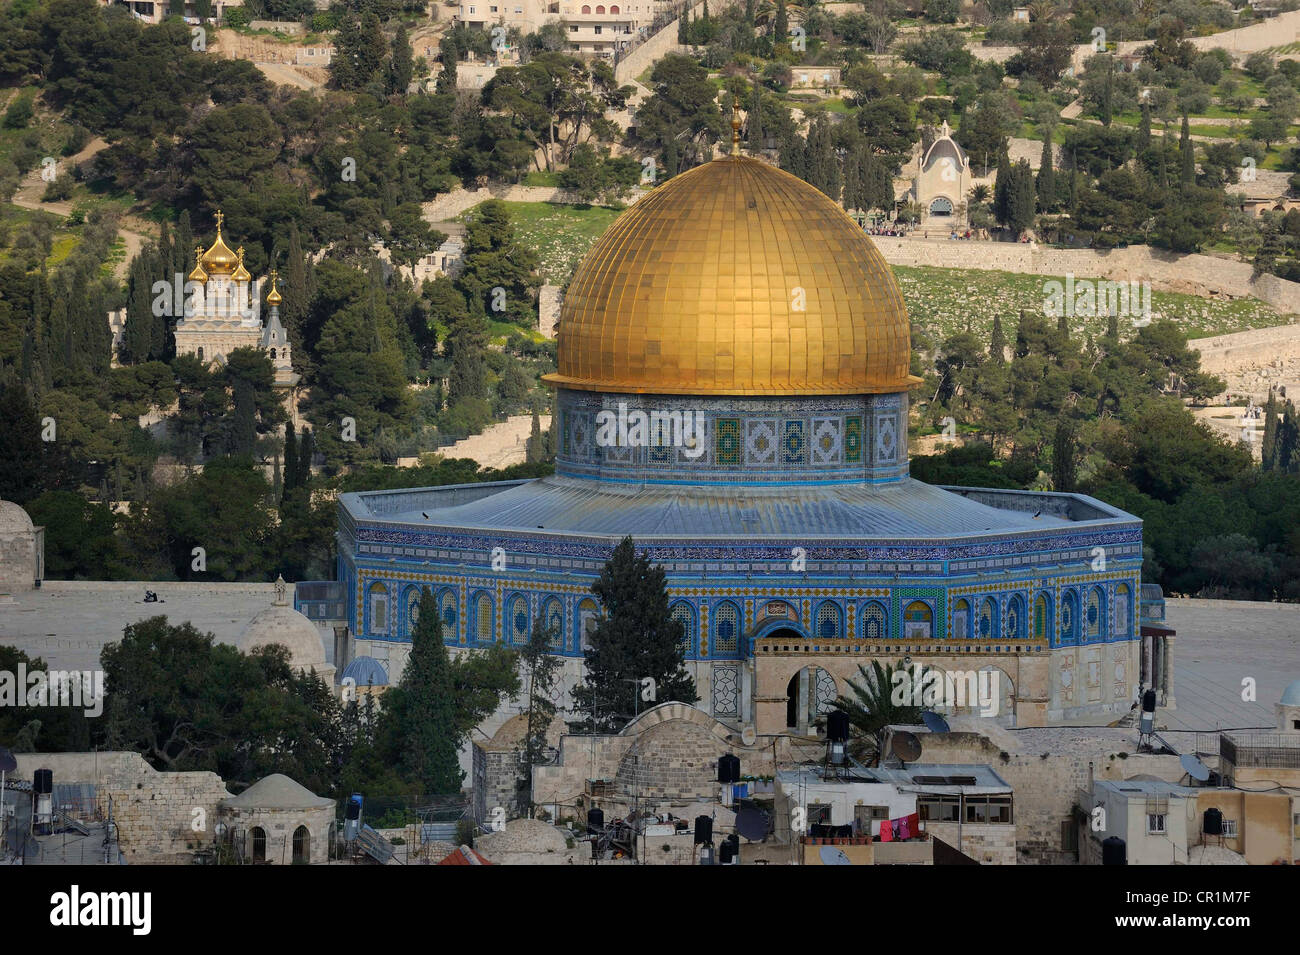 Dome of the Rock on the Temple Mount, Arab Quarter, Old City of Jerusalem, Israel, Middle East Stock Photo